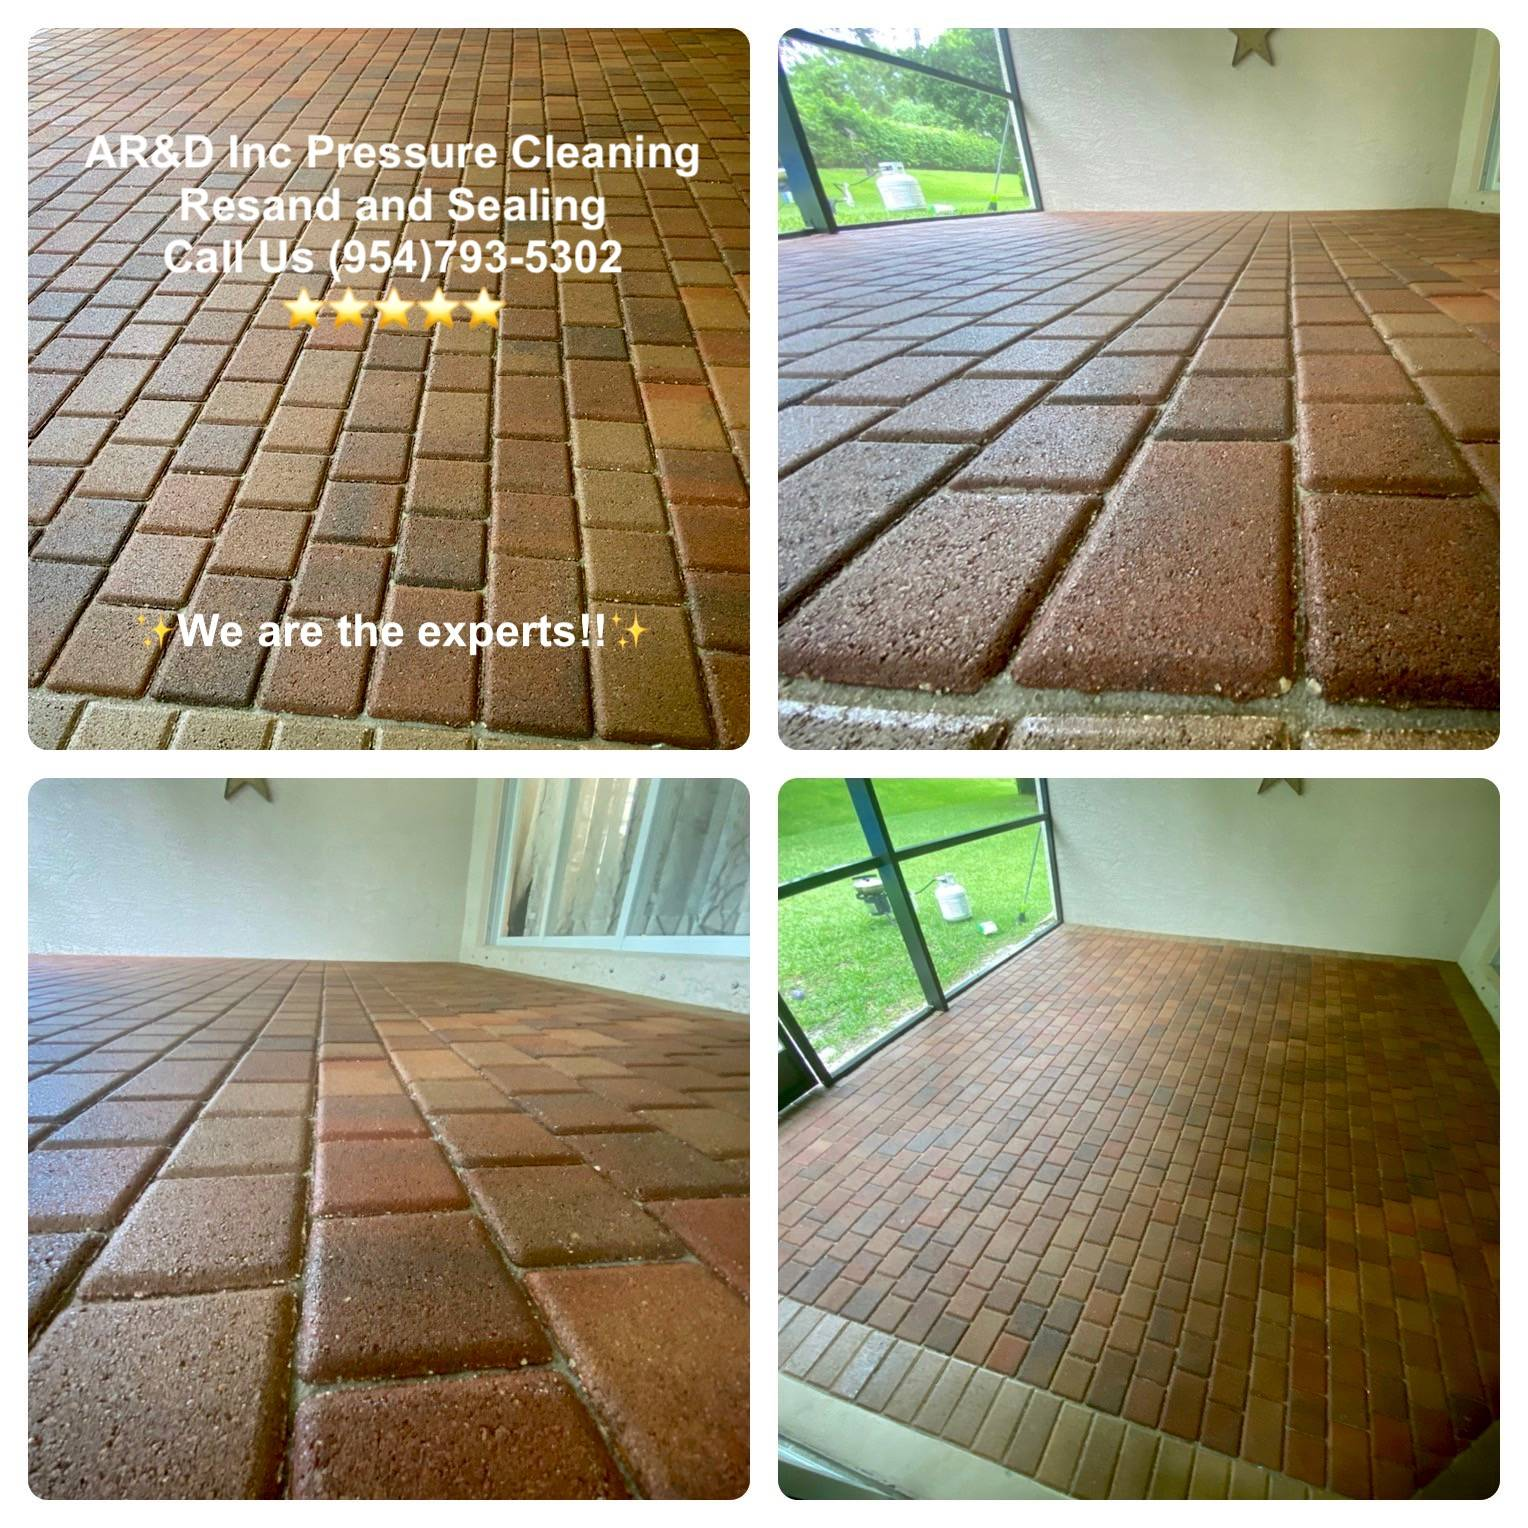 Paver Pressure Cleaning and Sealing